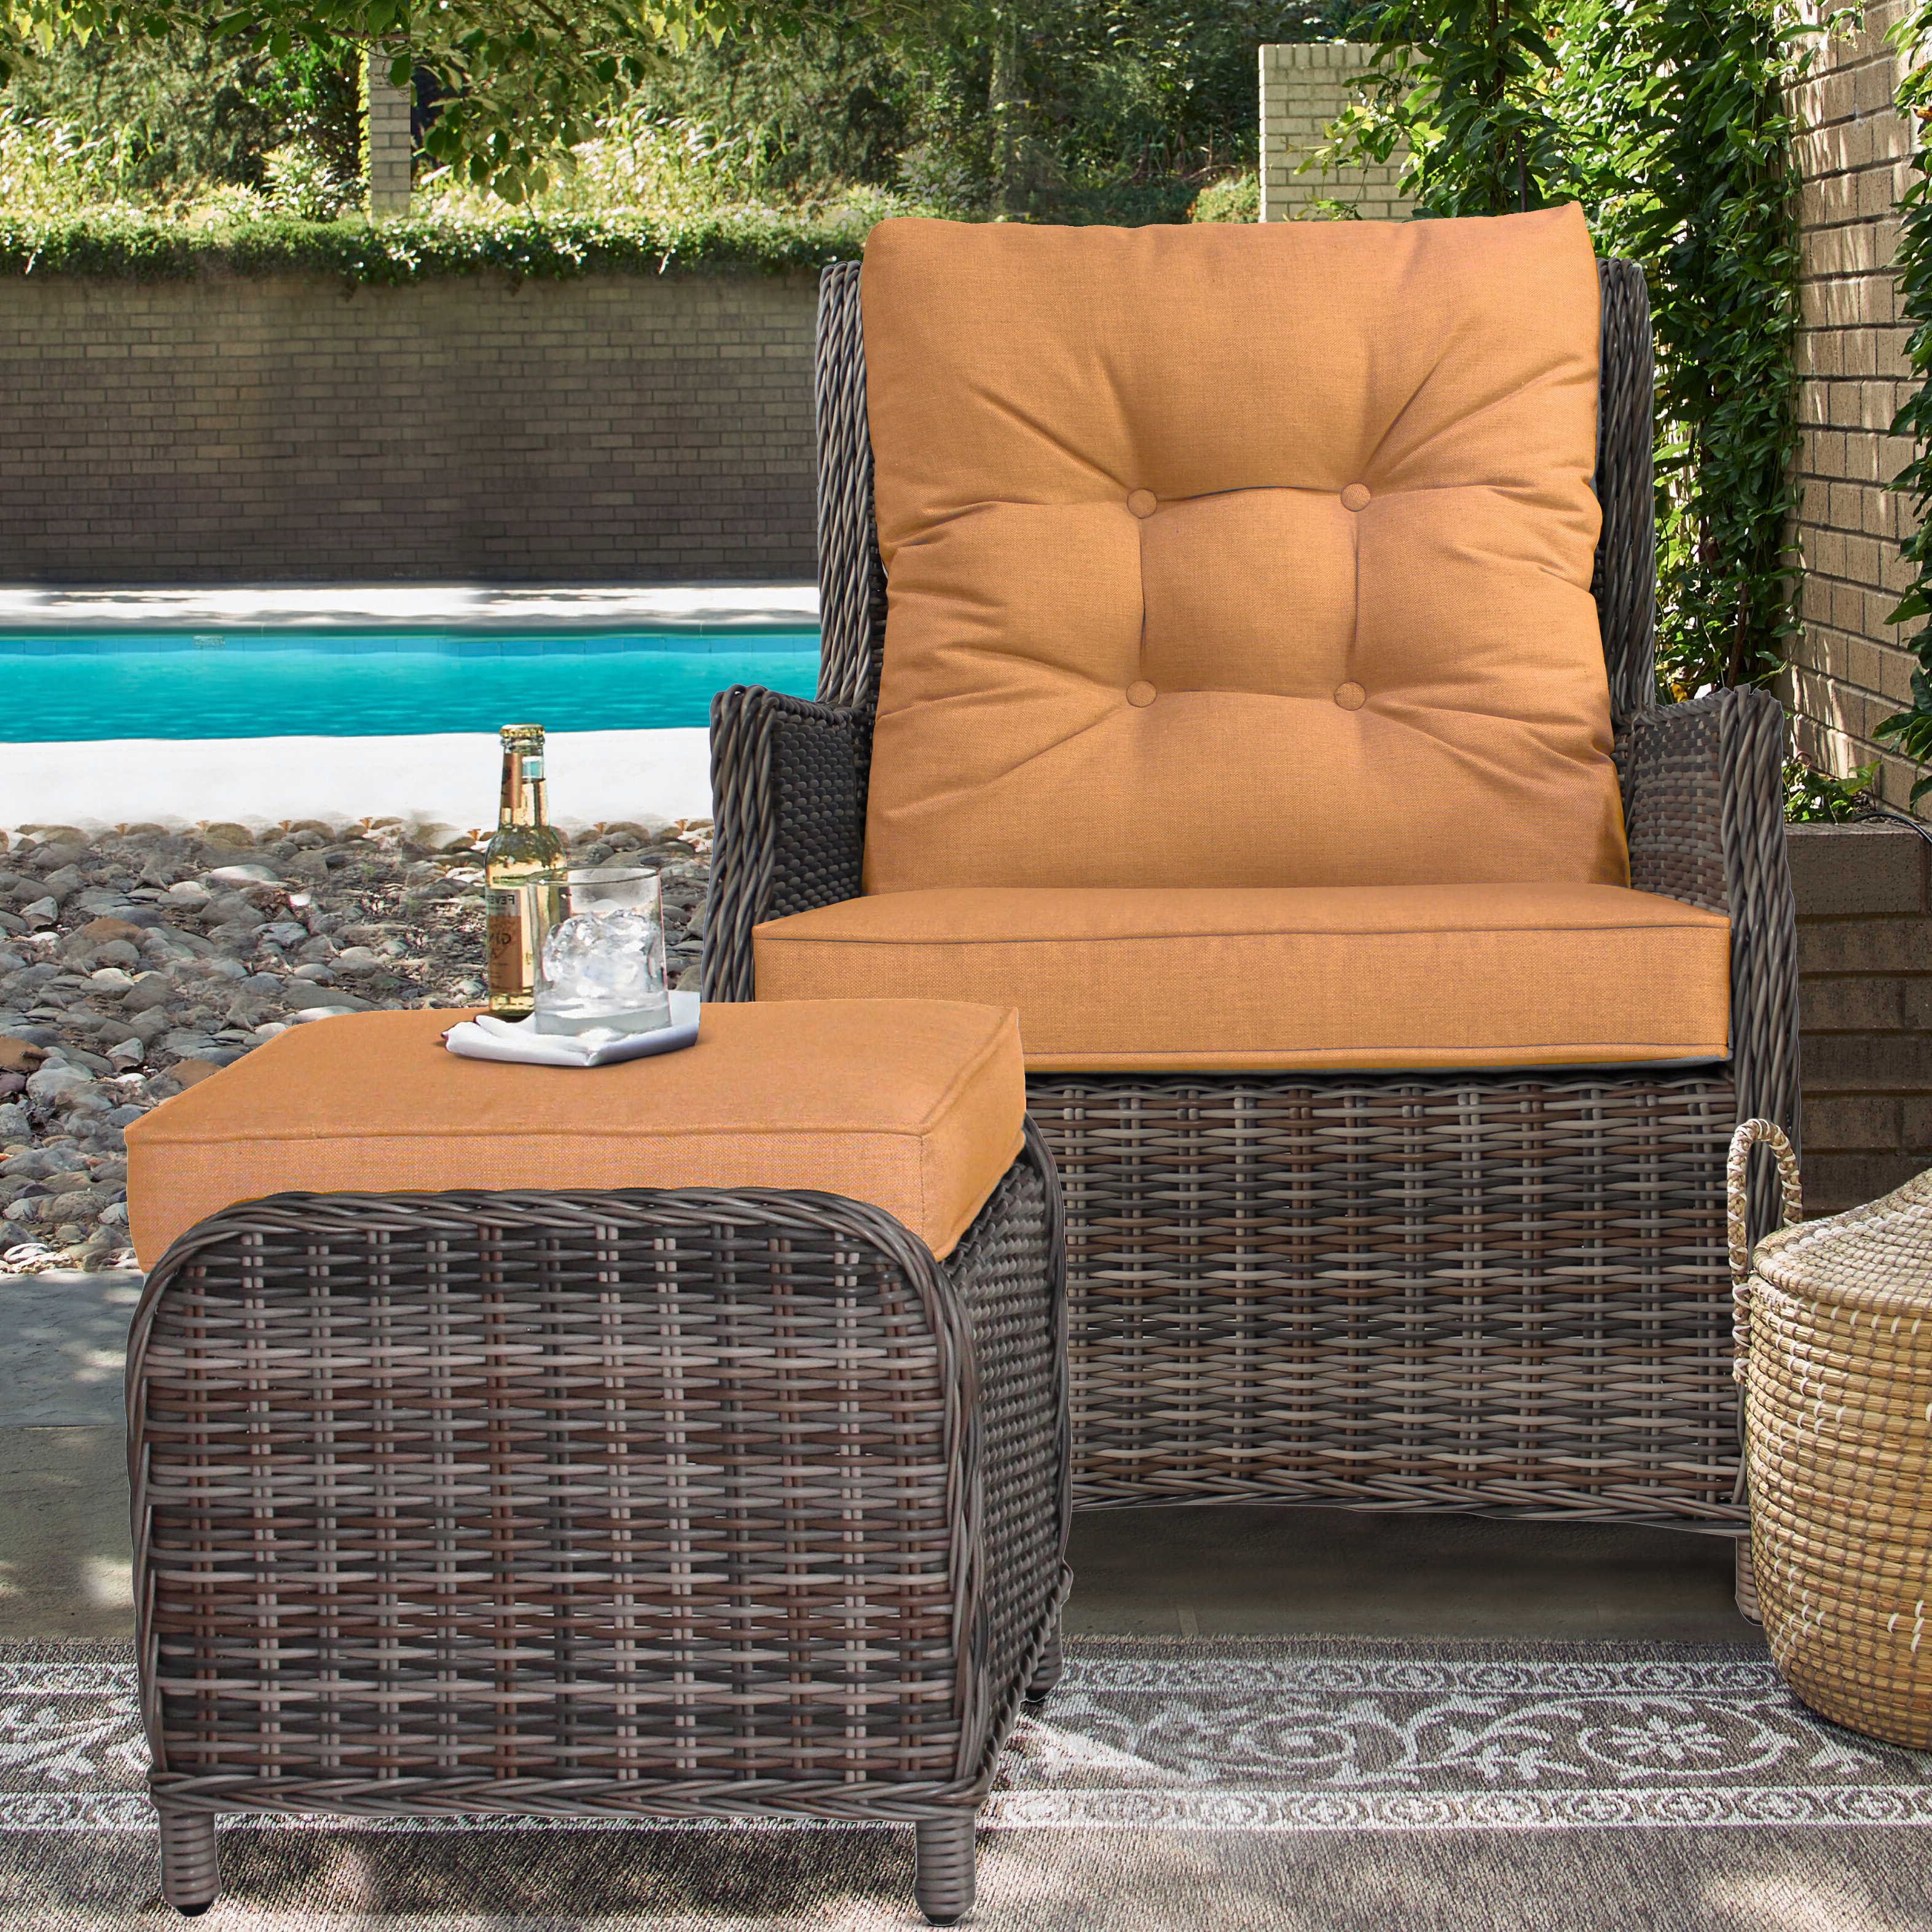 Cardoza Outdoor Recliner Patio Chair With Cushions And Ottoman For Latest Outdoor Adjustable Rattan Wicker Recliner Chairs With Cushion (View 5 of 25)